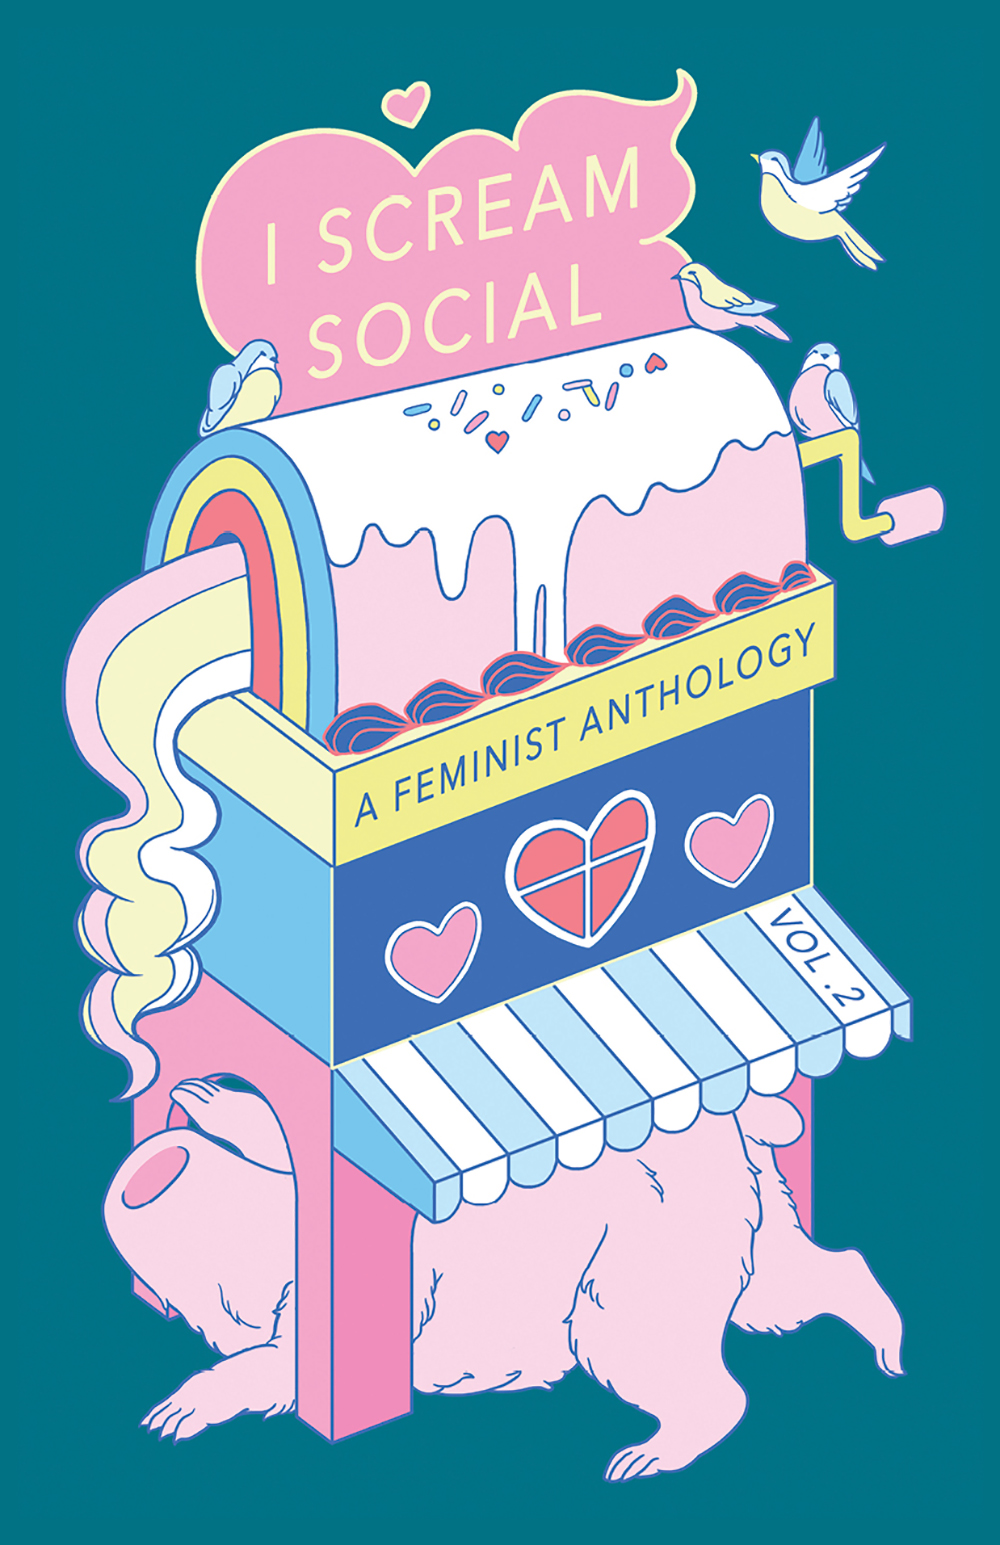 I Scream Social Anthology Volume 2